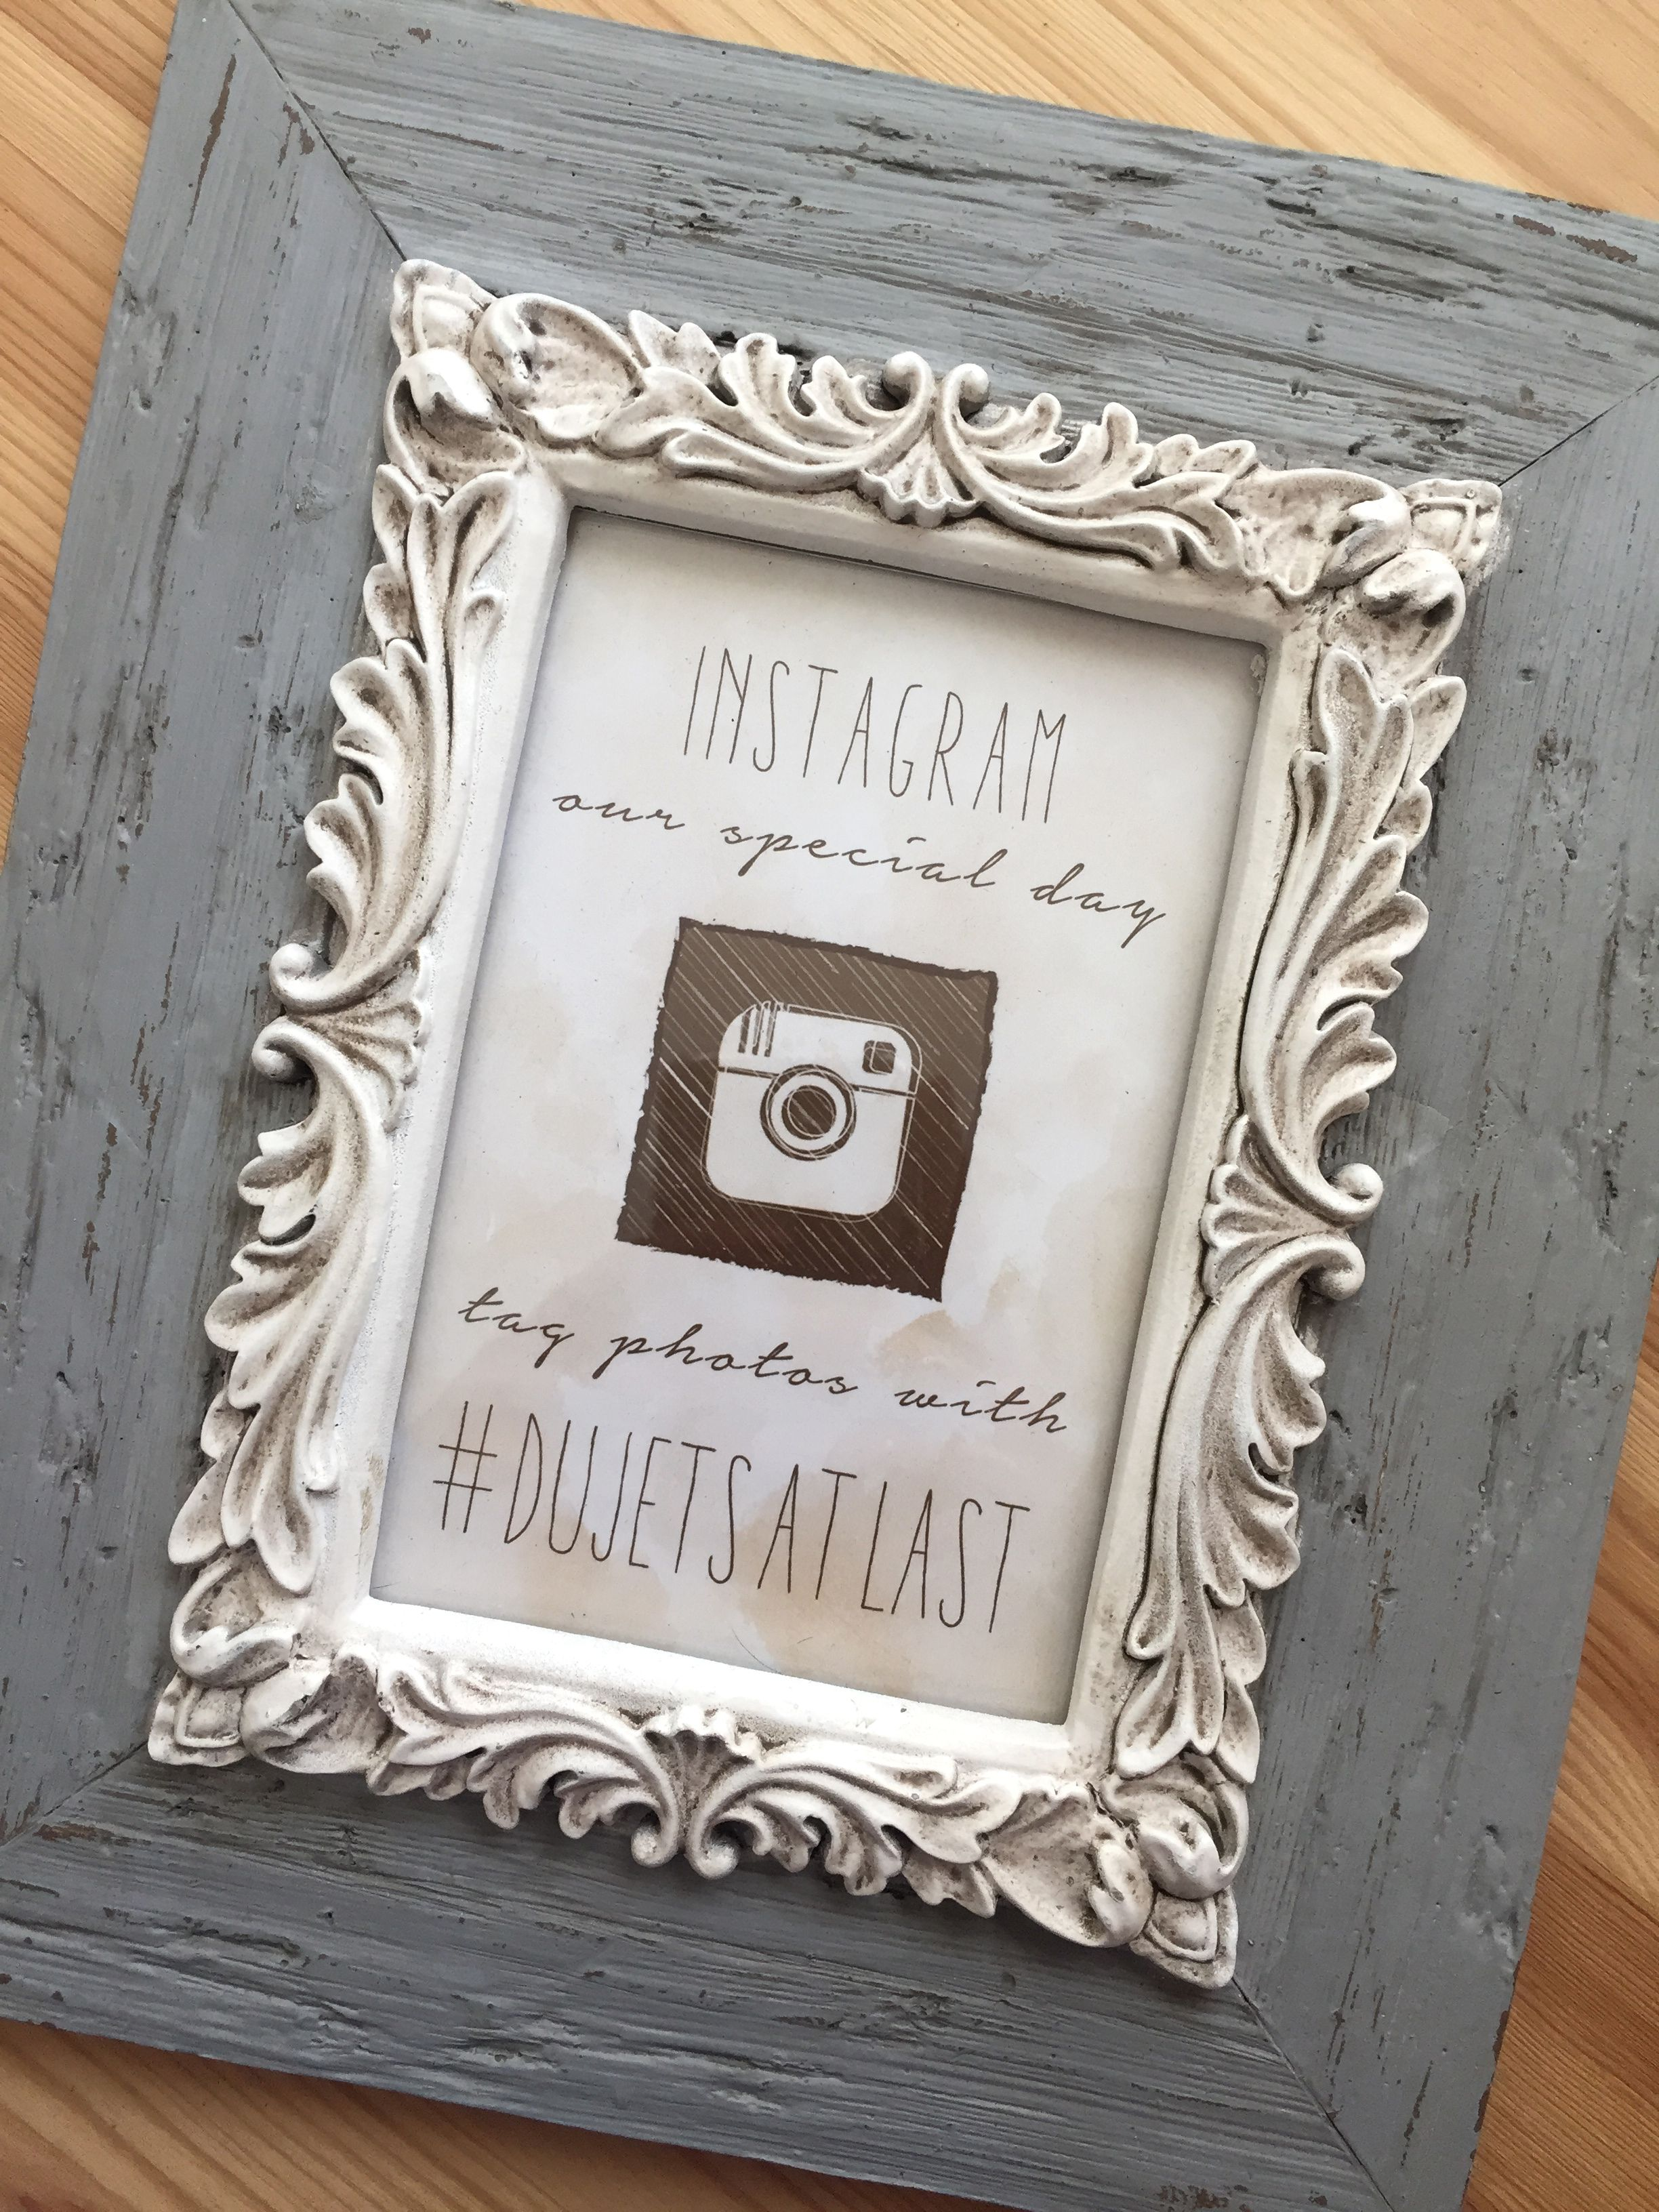 One of my cream colored rustic chic wedding hashtag signs